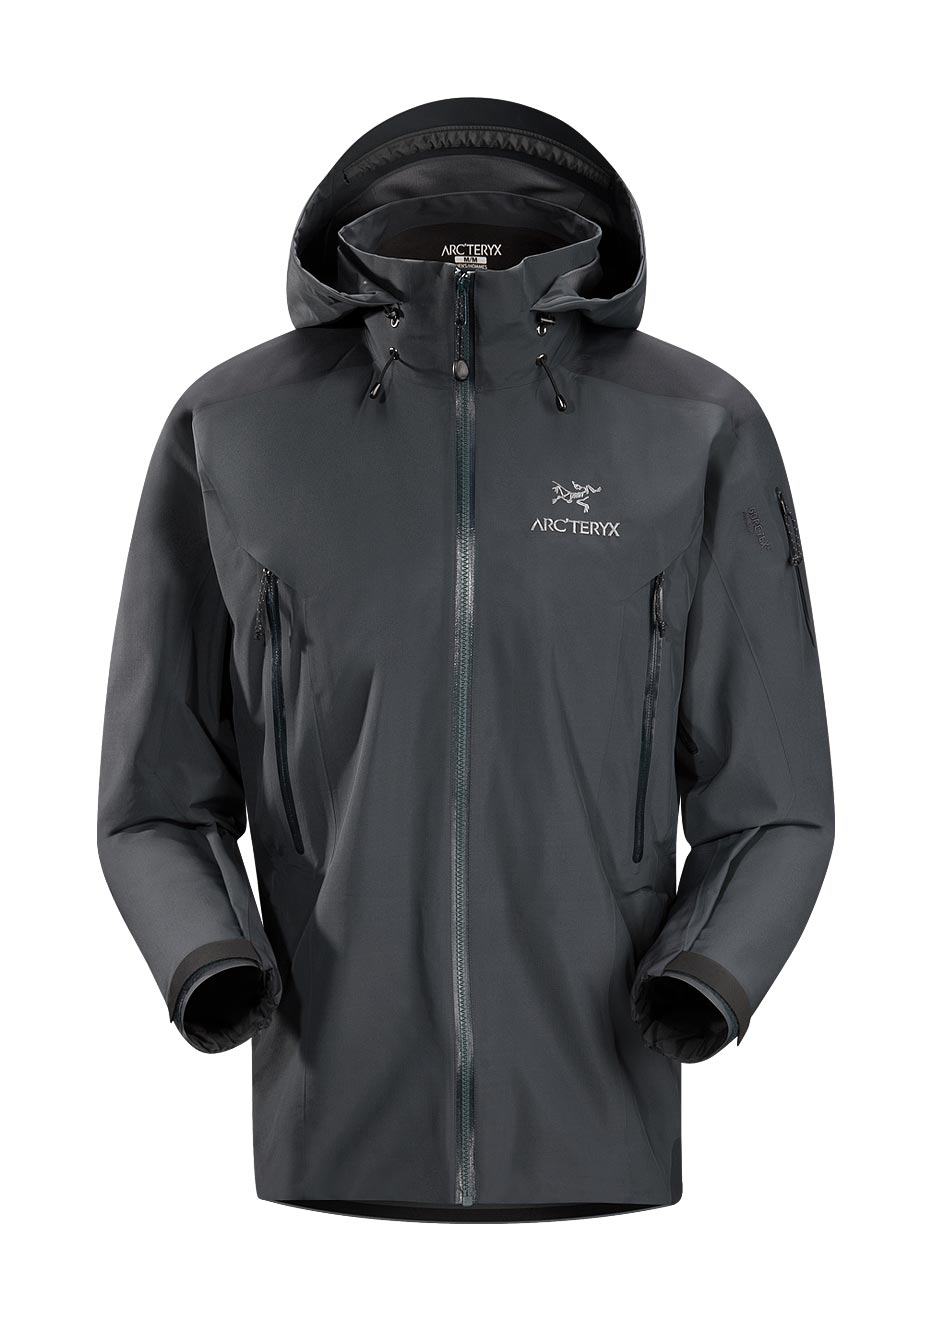 Arcteryx Night shade Theta AR Jacket